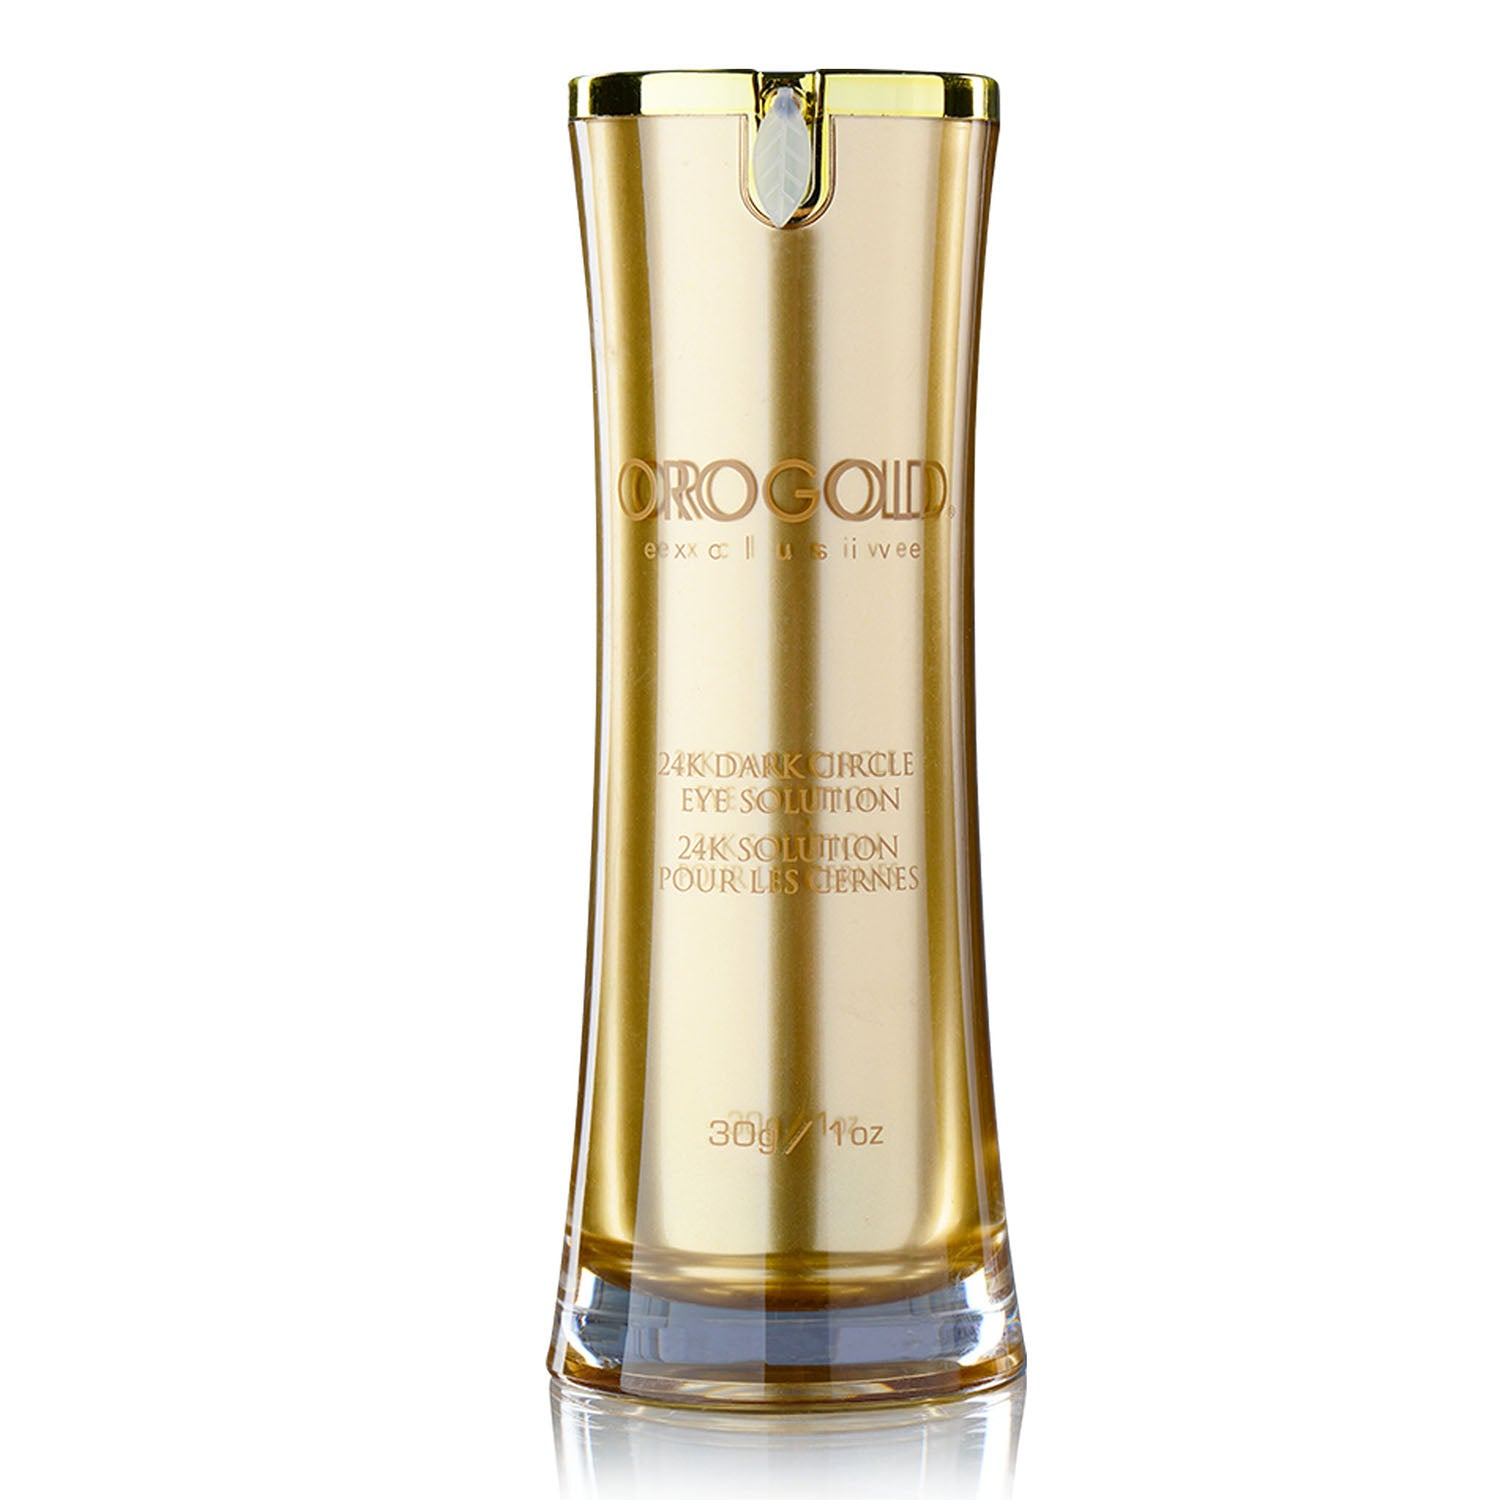 orogold anti wrinkle eye cream